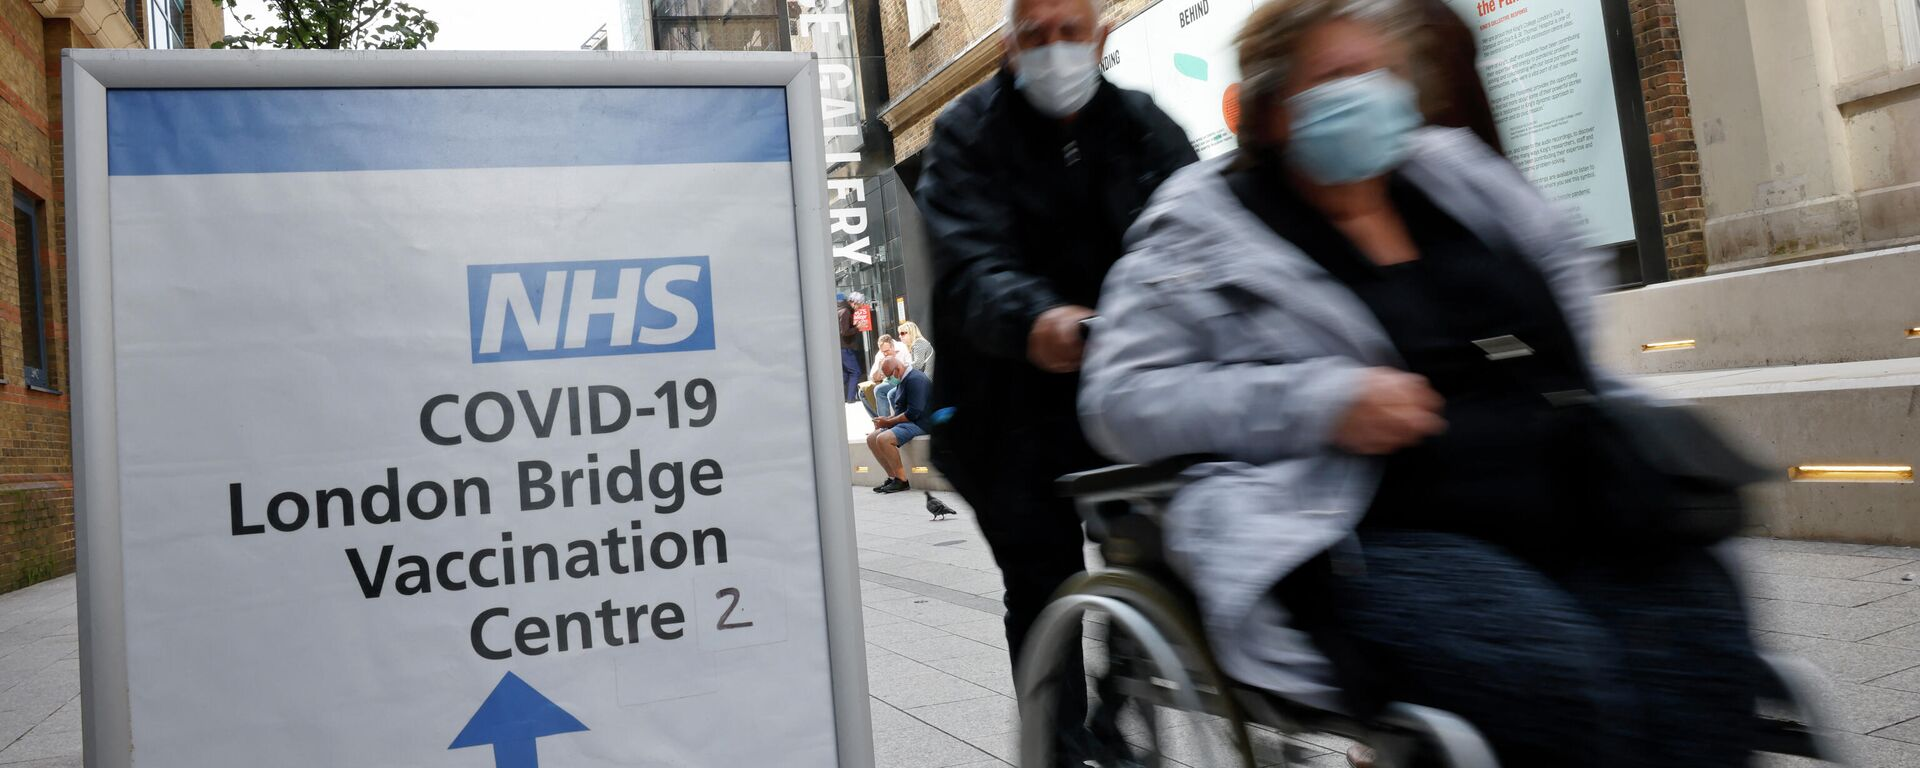 People pass signs indicating the entrance to the London Bridge Vaccination Centre in London on August 9, 2021 - Sputnik International, 1920, 12.10.2021